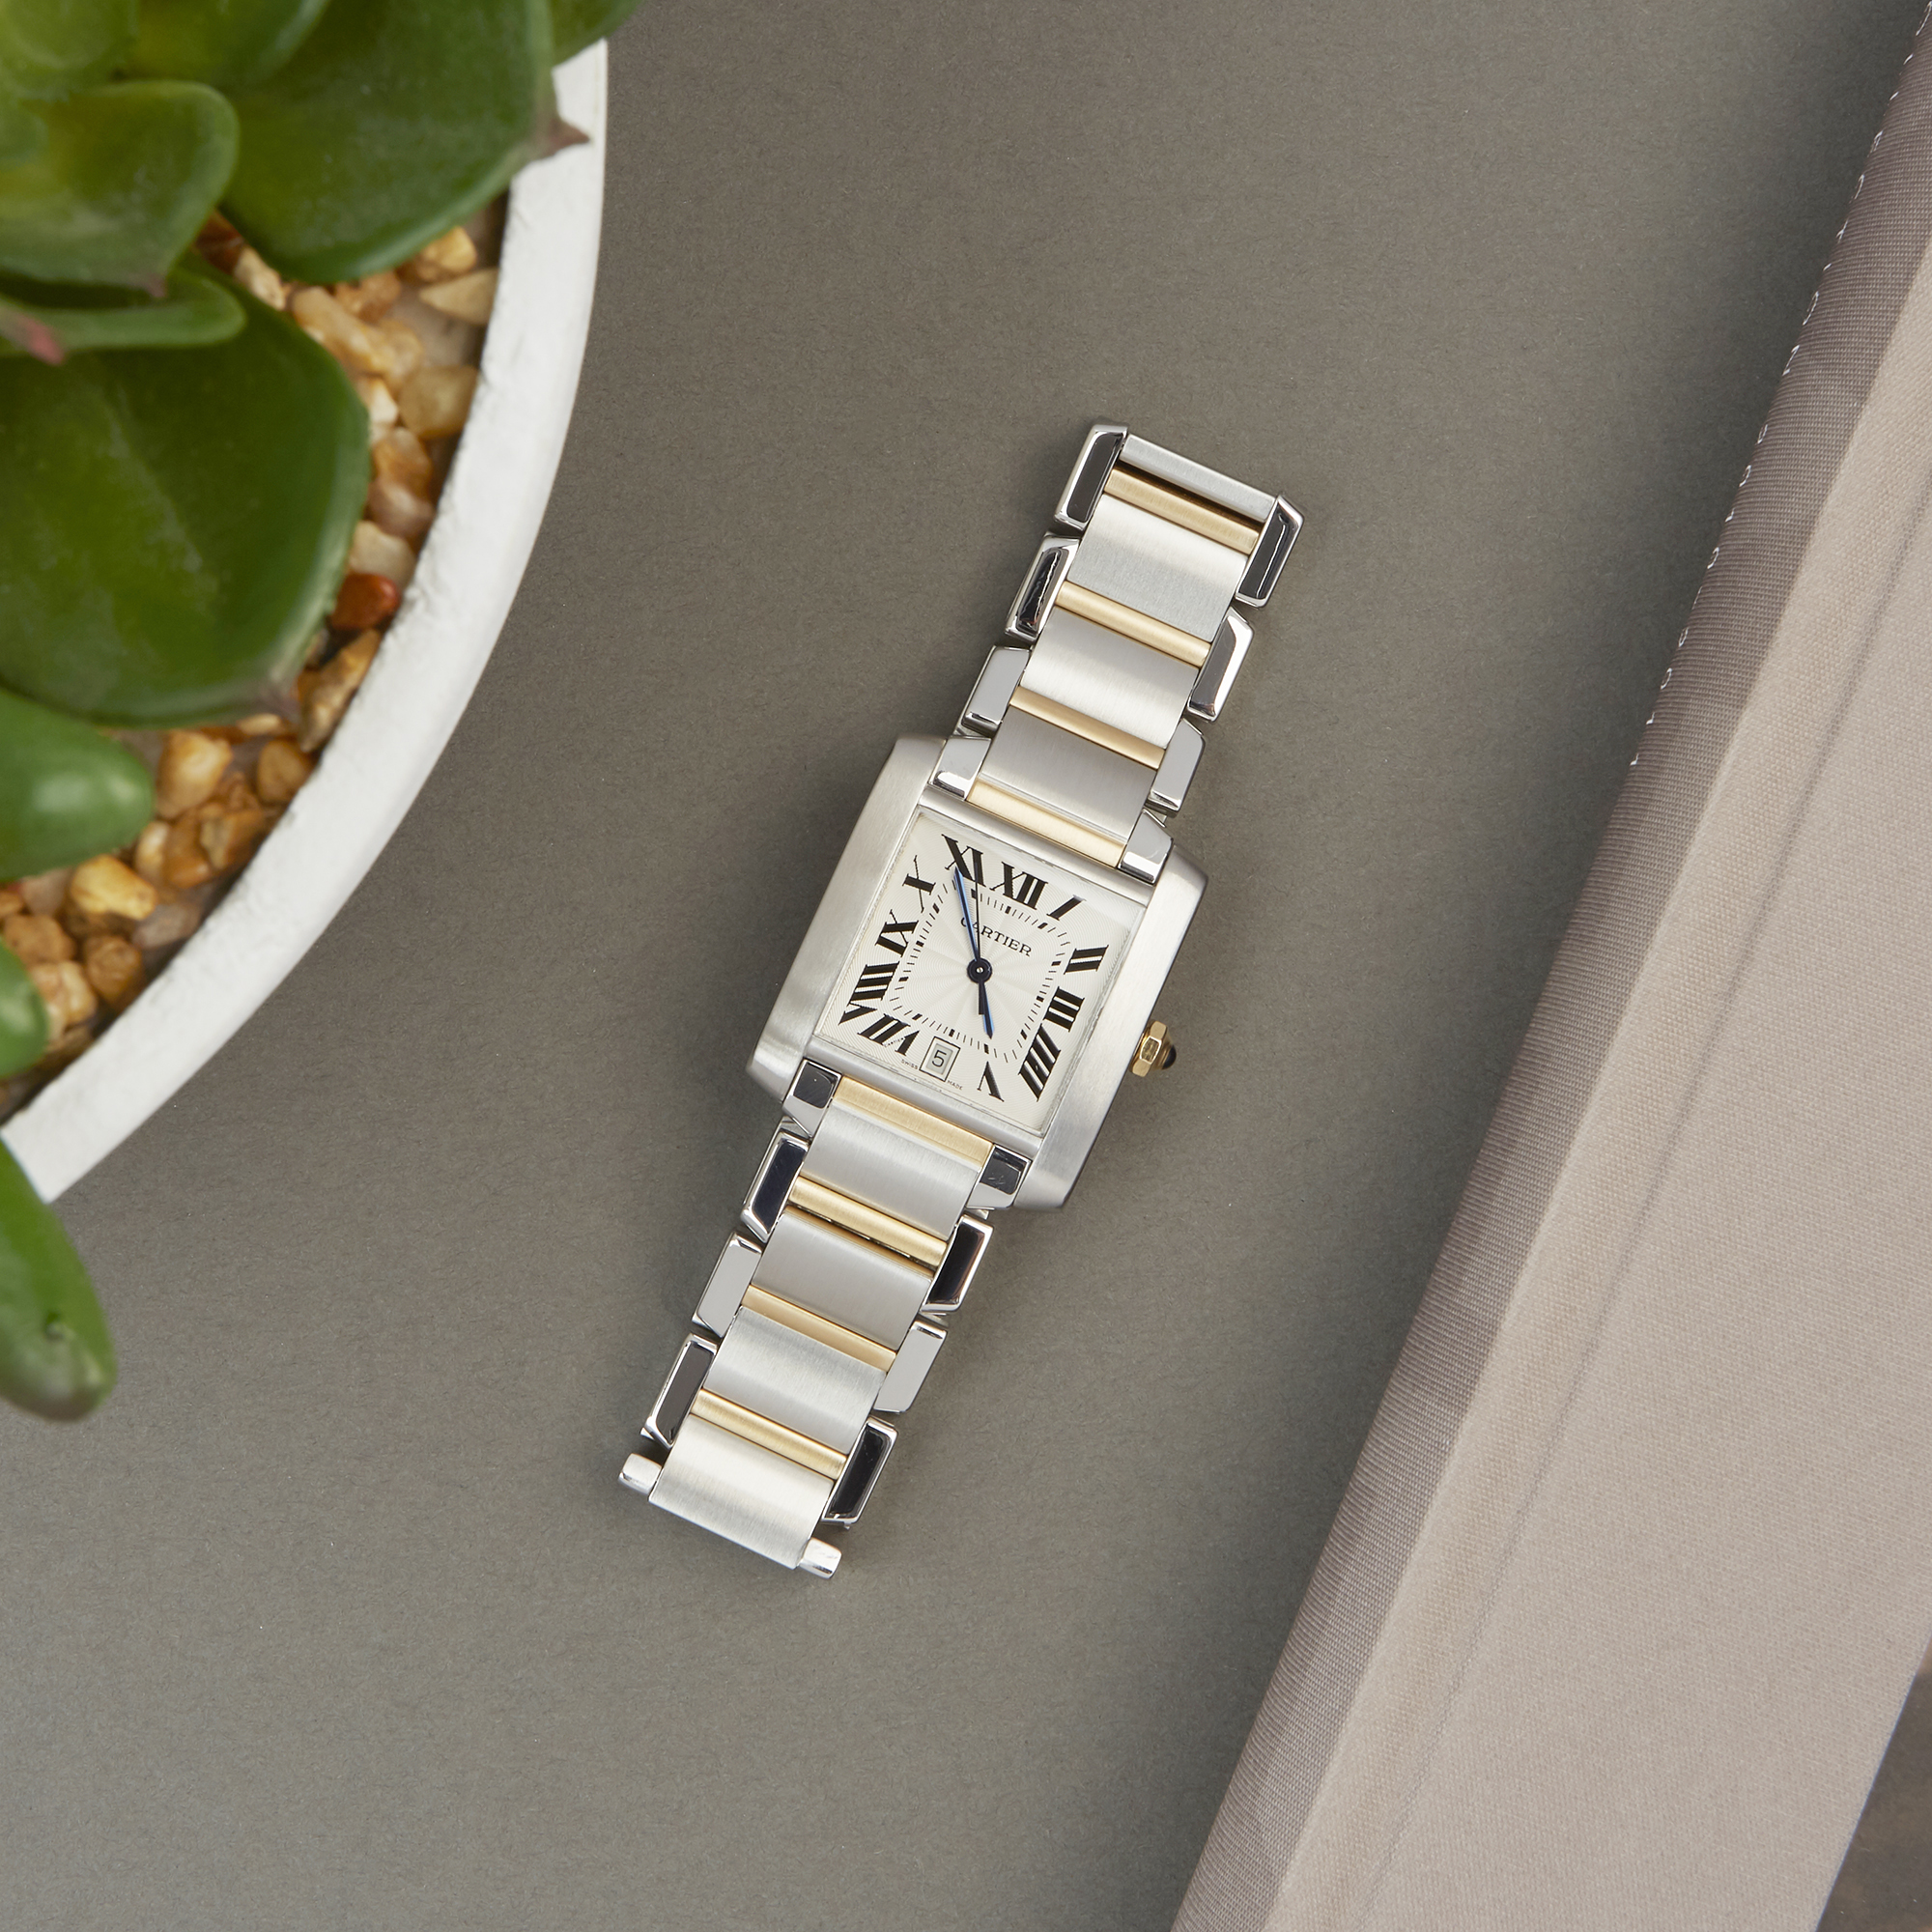 Cartier Tank Francaise 2302 Unisex Stainless Steel Watch - Image 2 of 8